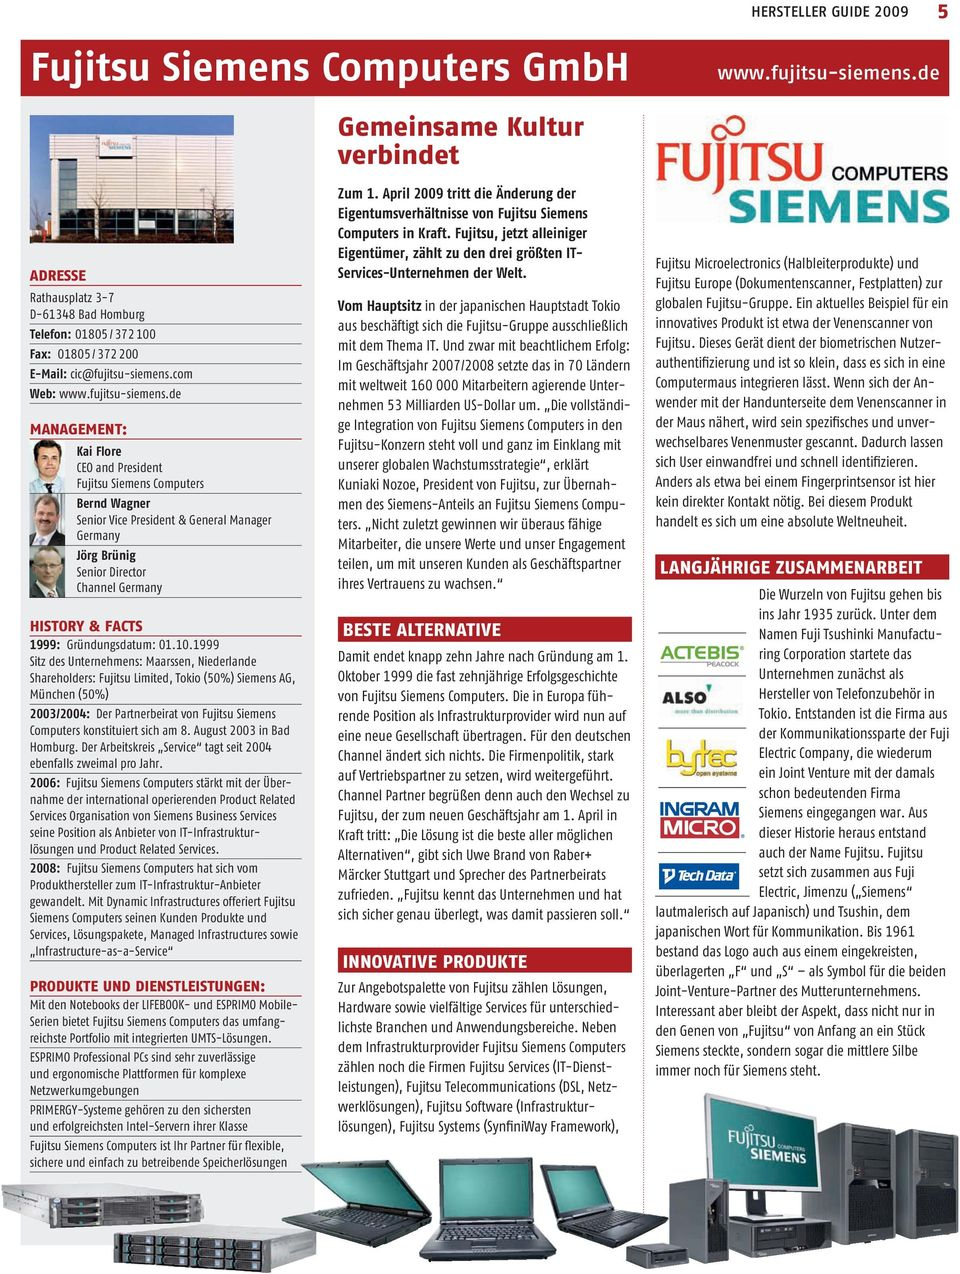 de MANAGEMENT: Kai Flore CEO and President Fujitsu Siemens Computers Bernd Wagner Senior Vice President & General Manager Germany Jörg Brünig Senior Director Channel Germany HISTORY & FACTS 1999: